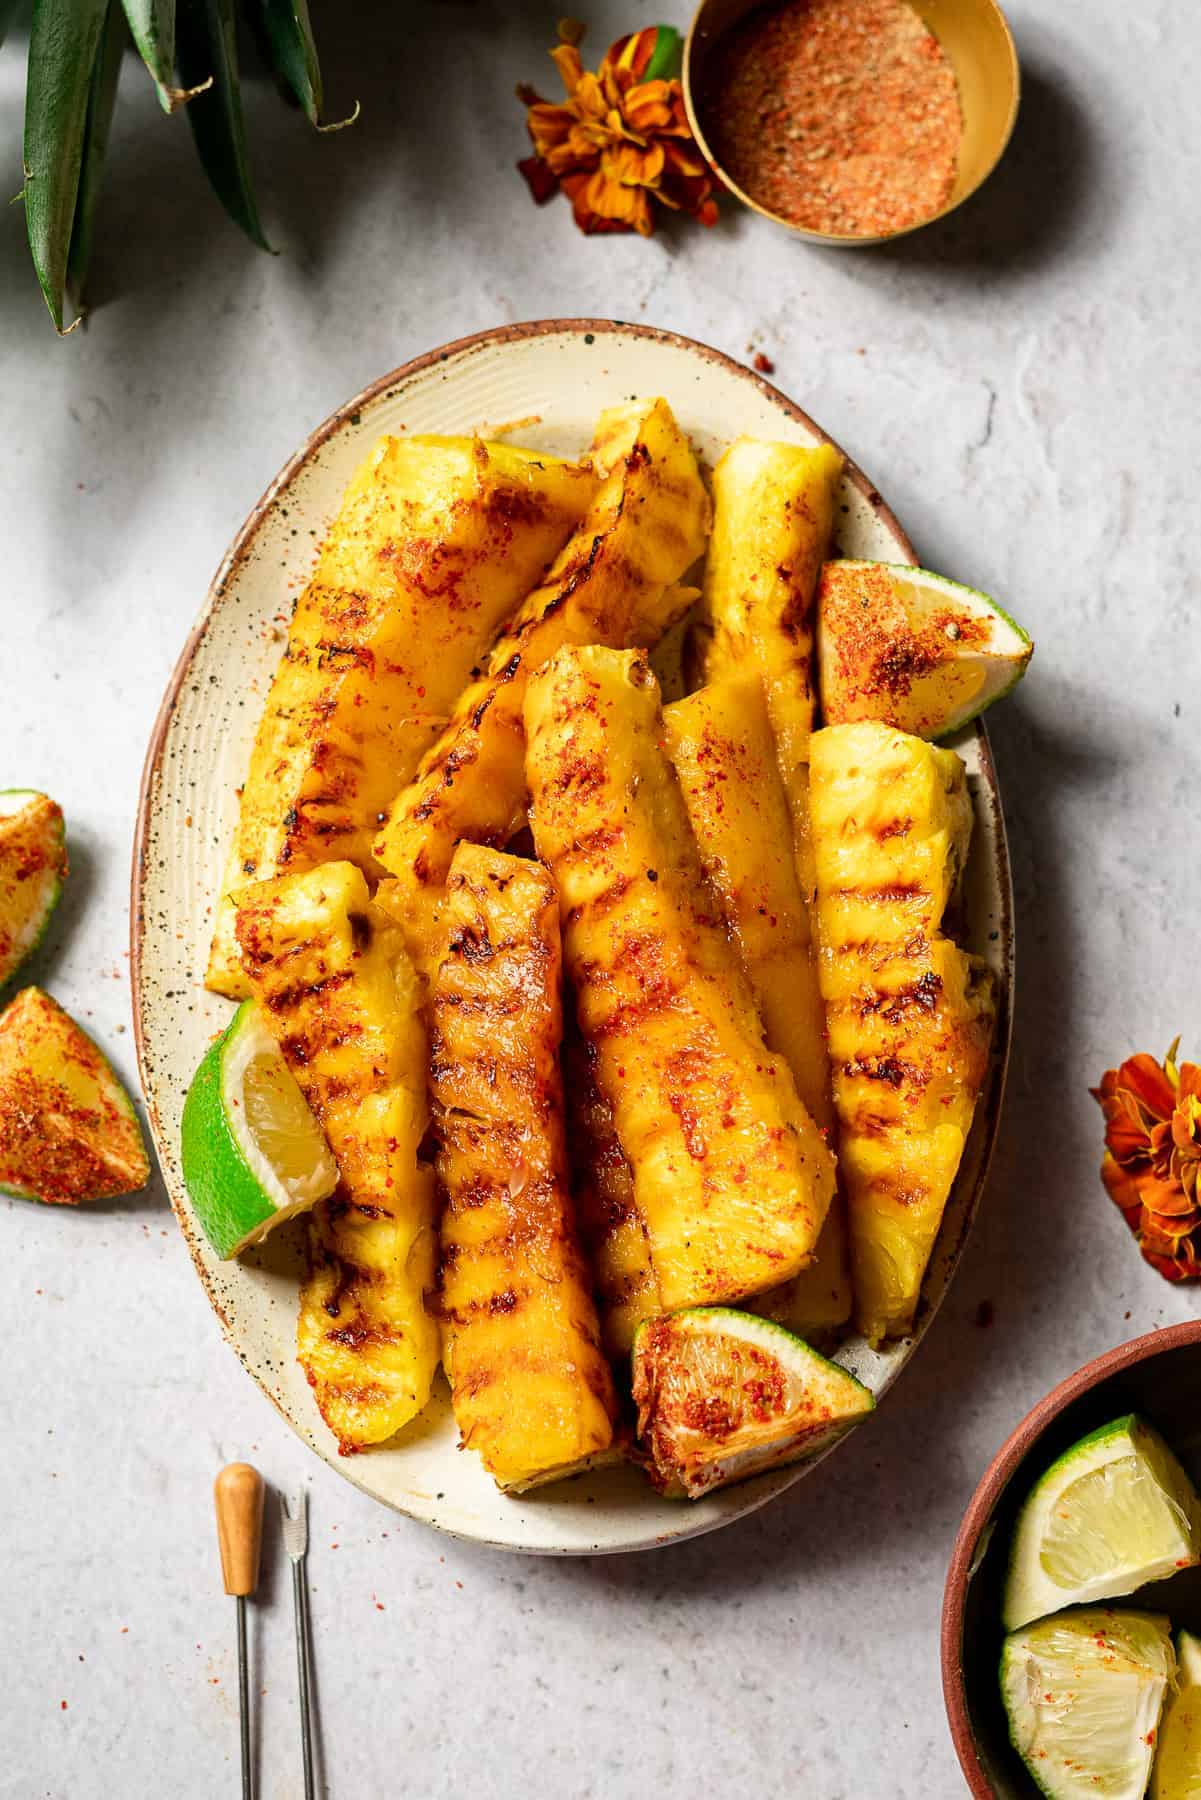 Copy of Chili Lime Grilled Pineapple Spears • Kim Schob